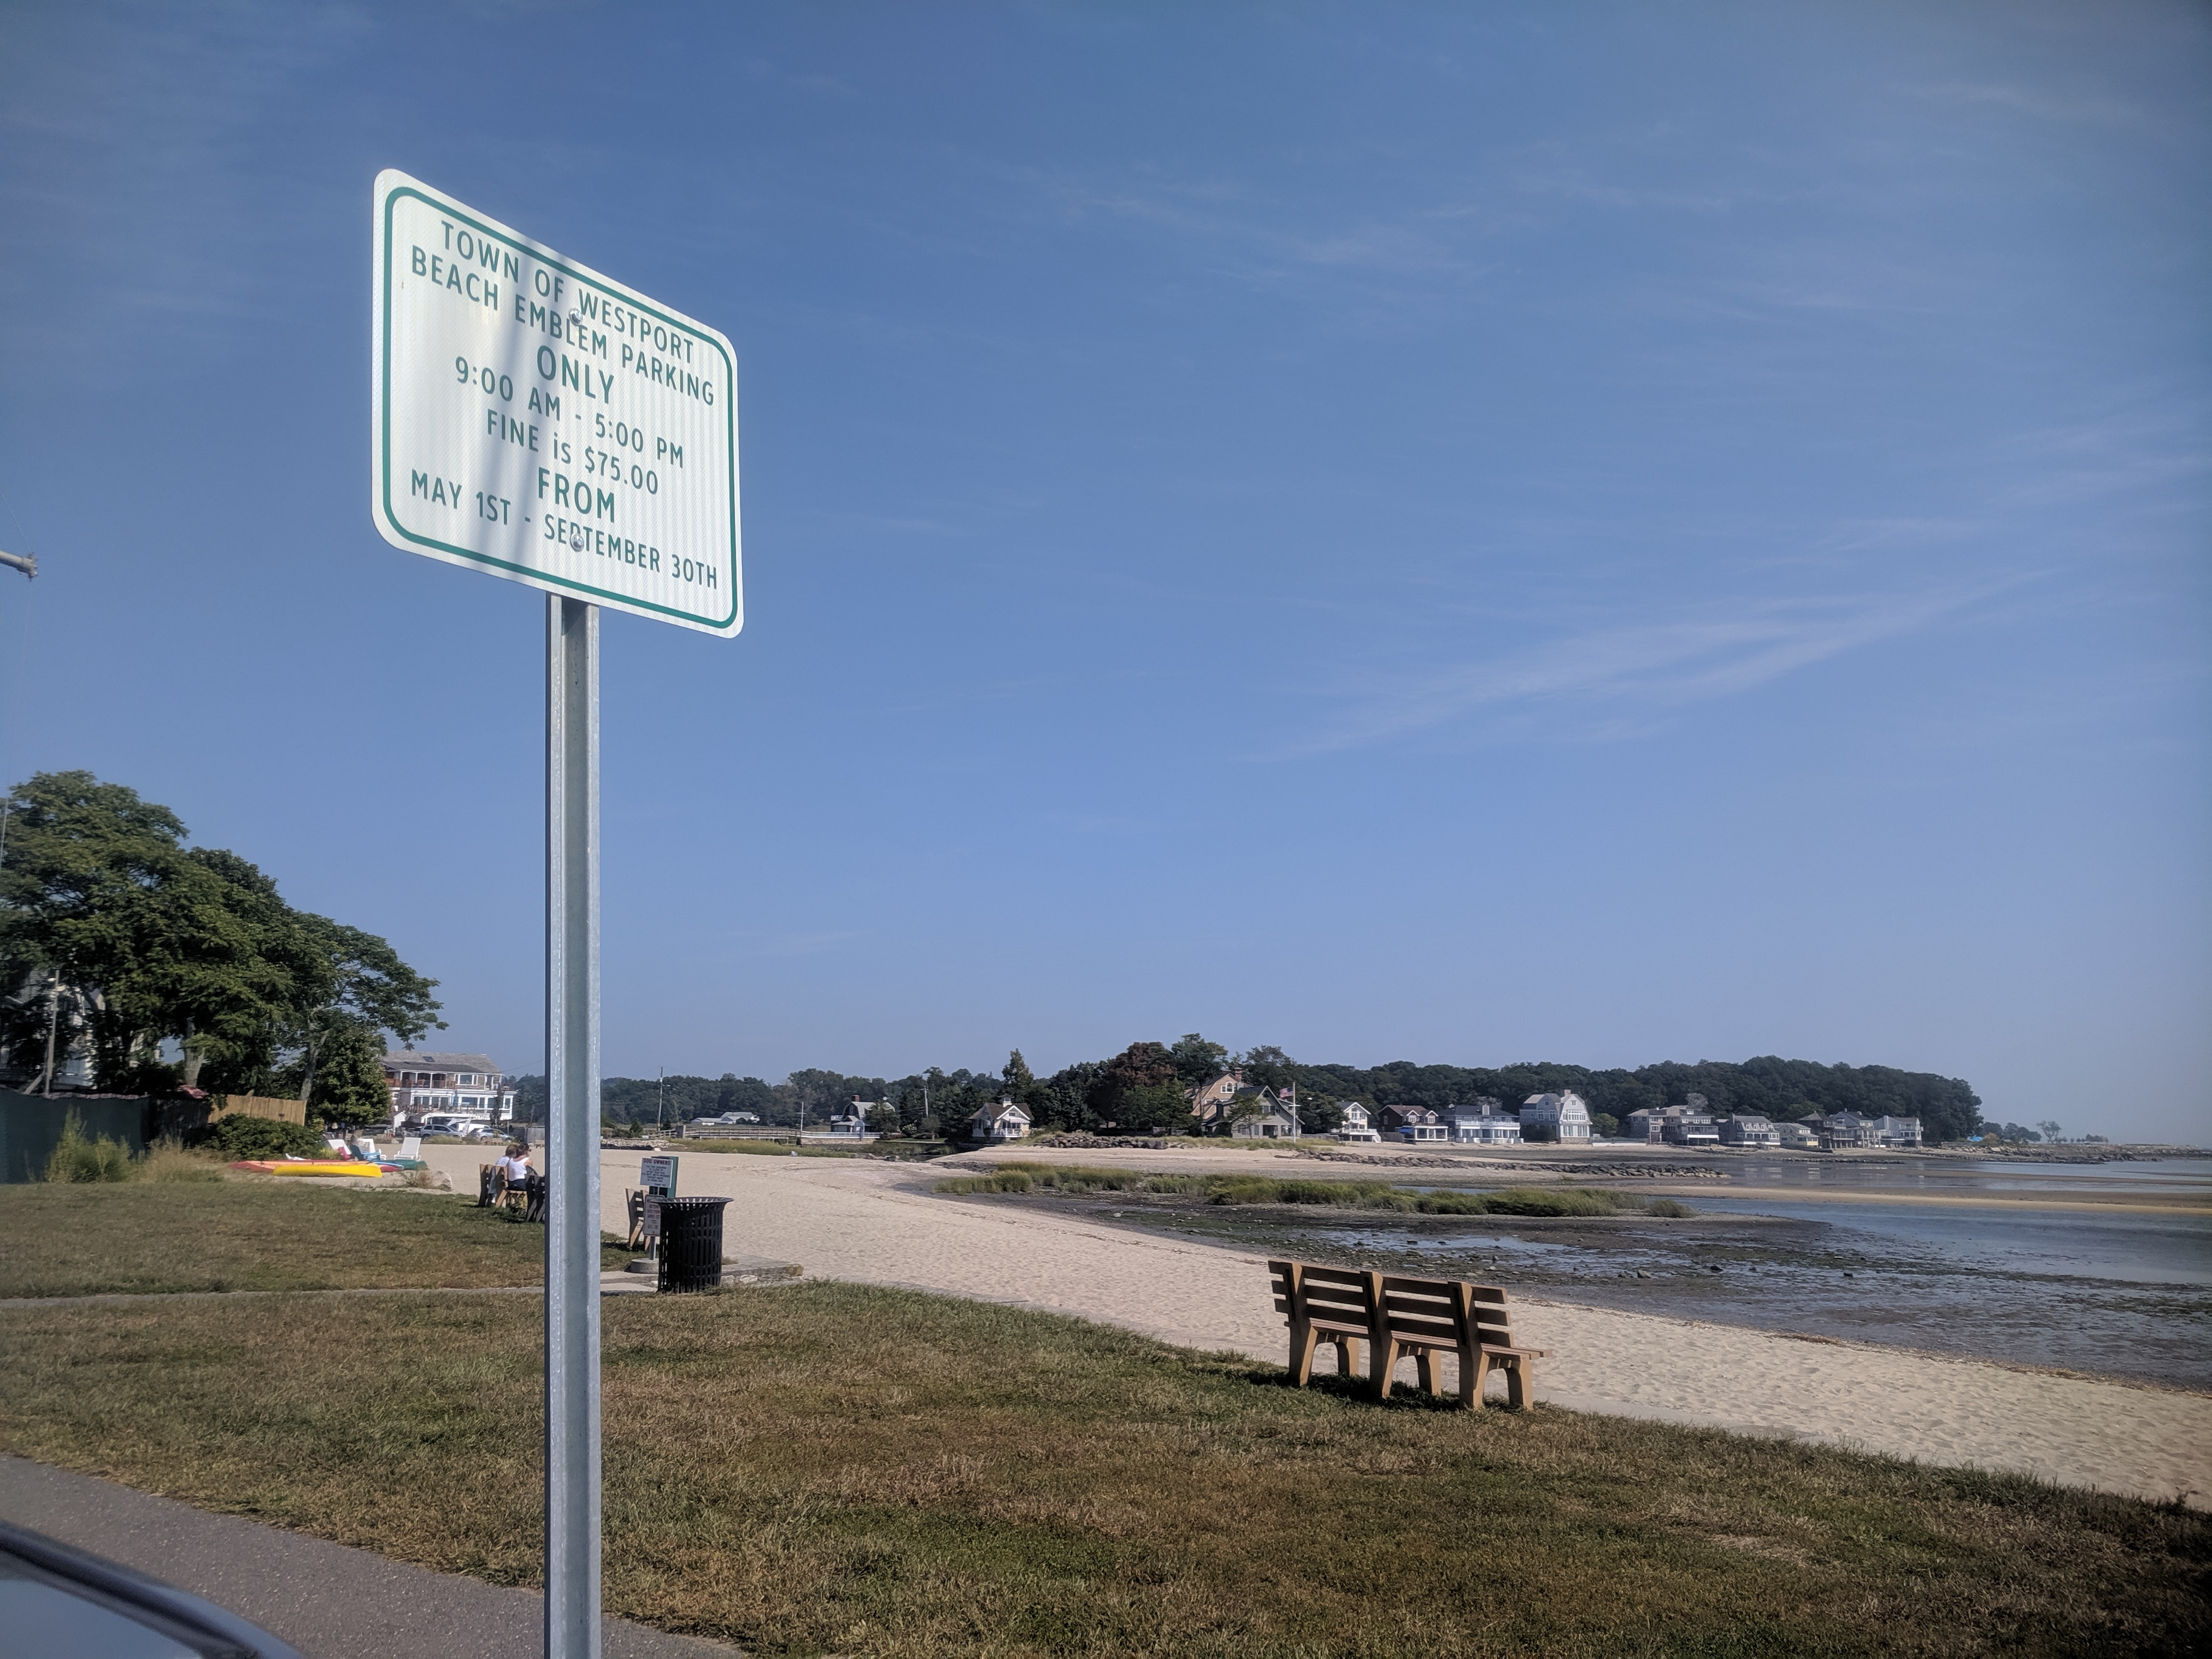 New Haven lawmaker would ban exclusionary beach policies